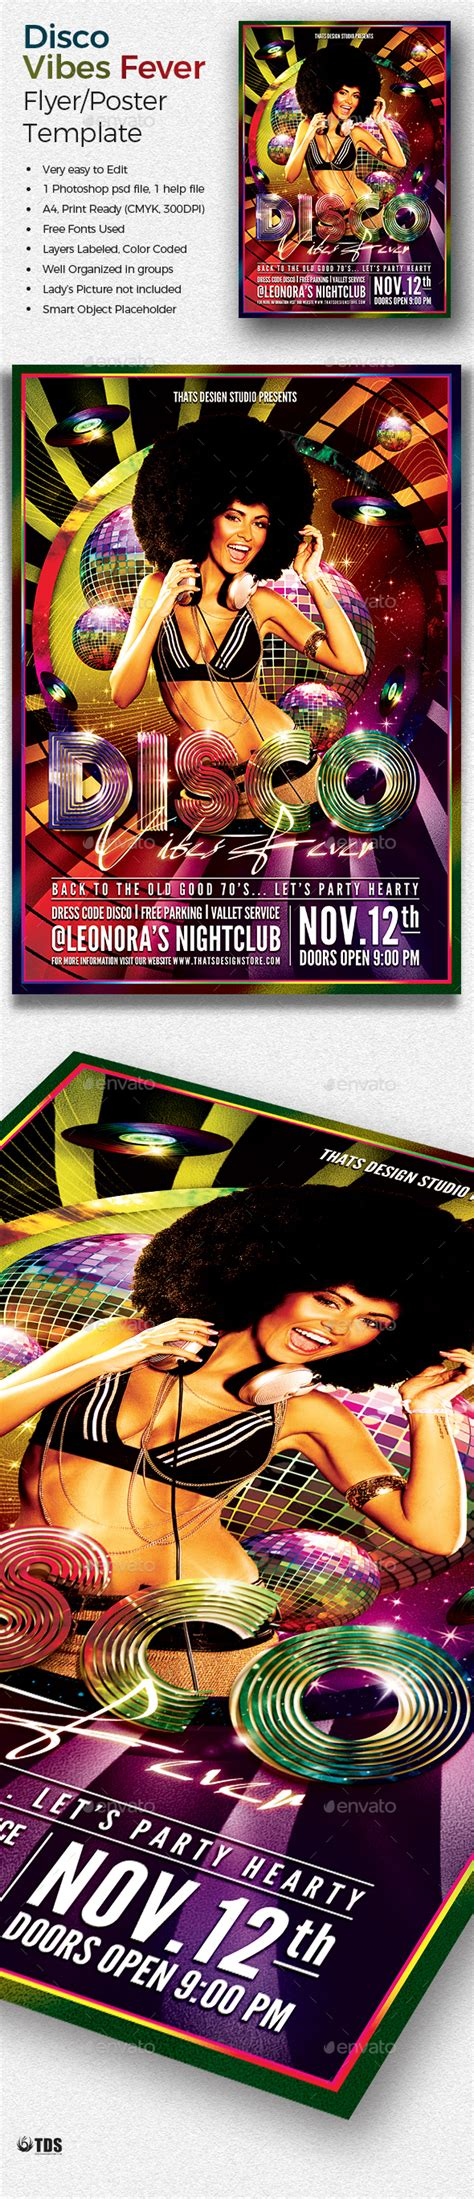 Disco Vibes Fever Flyer Template By Lou606 Graphicriver